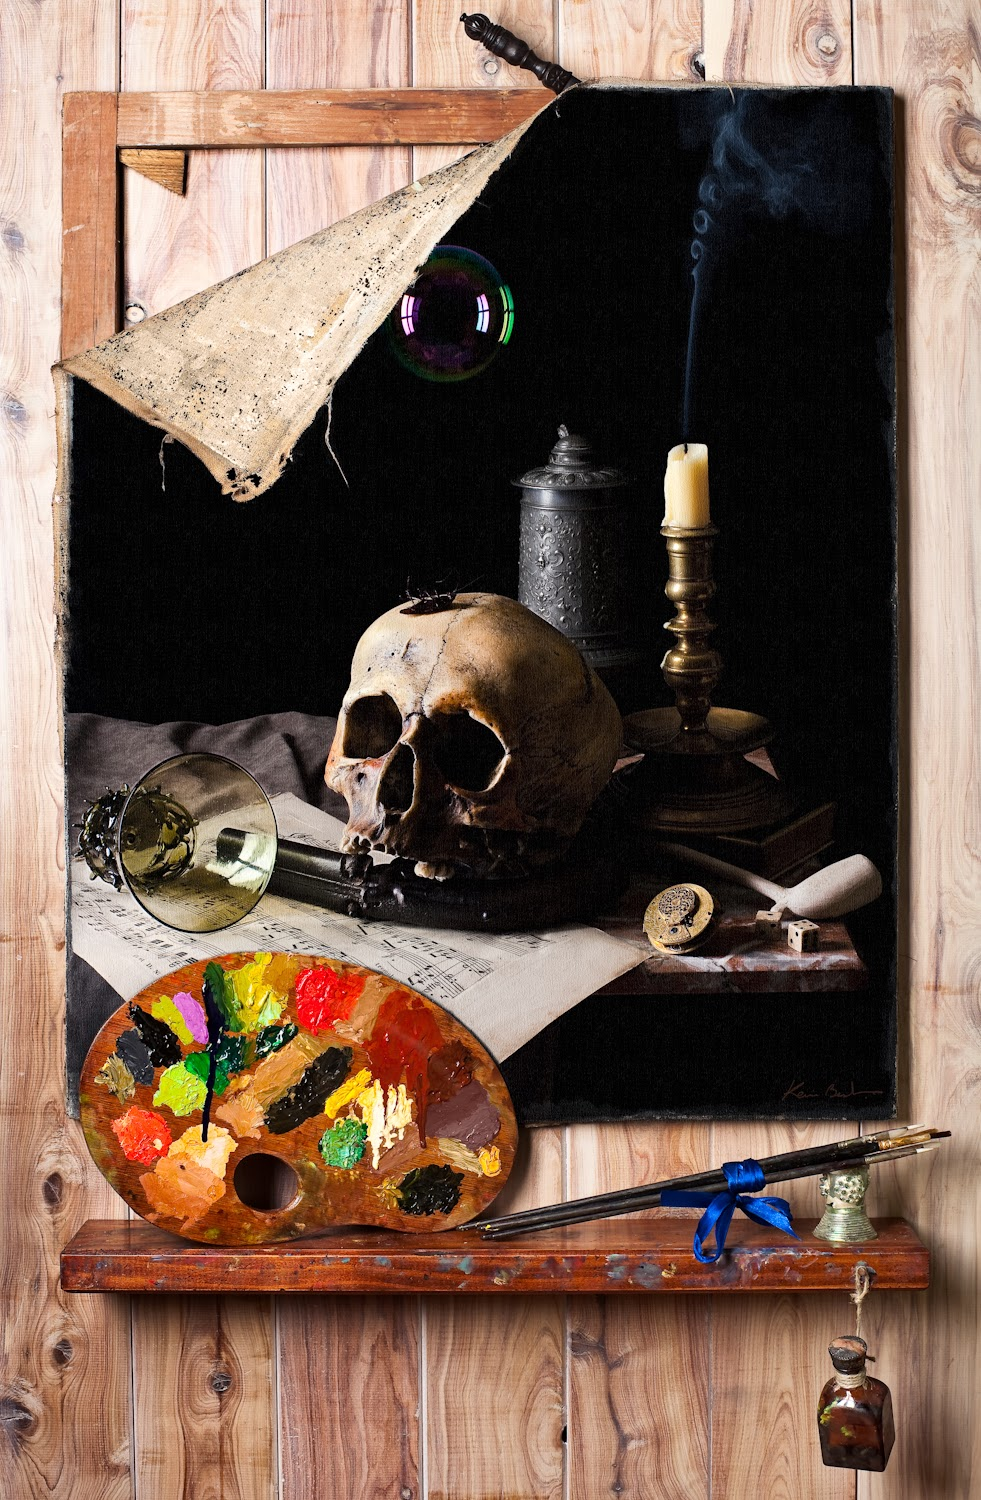 Vanitas Still Life in the style of Cornelius Gijsbrechts